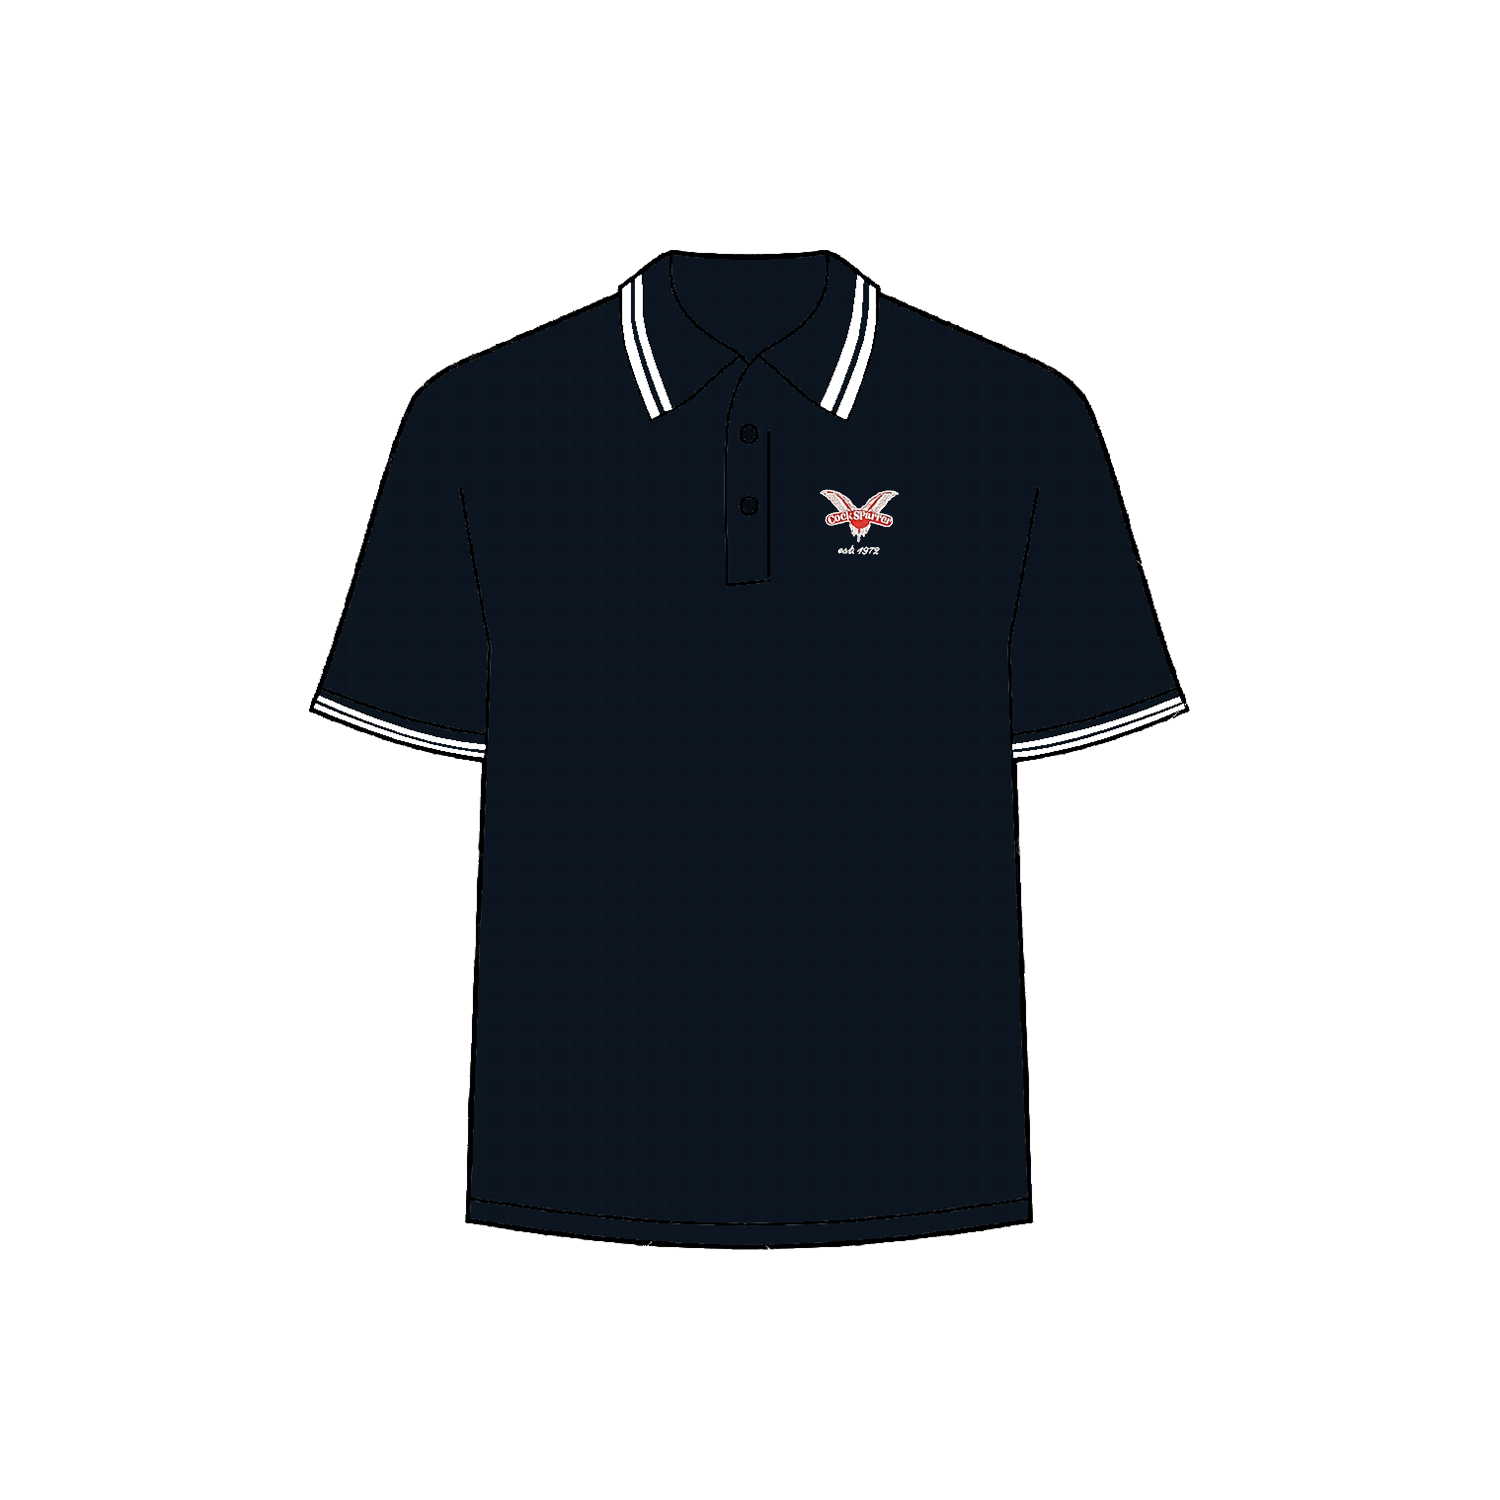 Red 1972 navy polo shirt